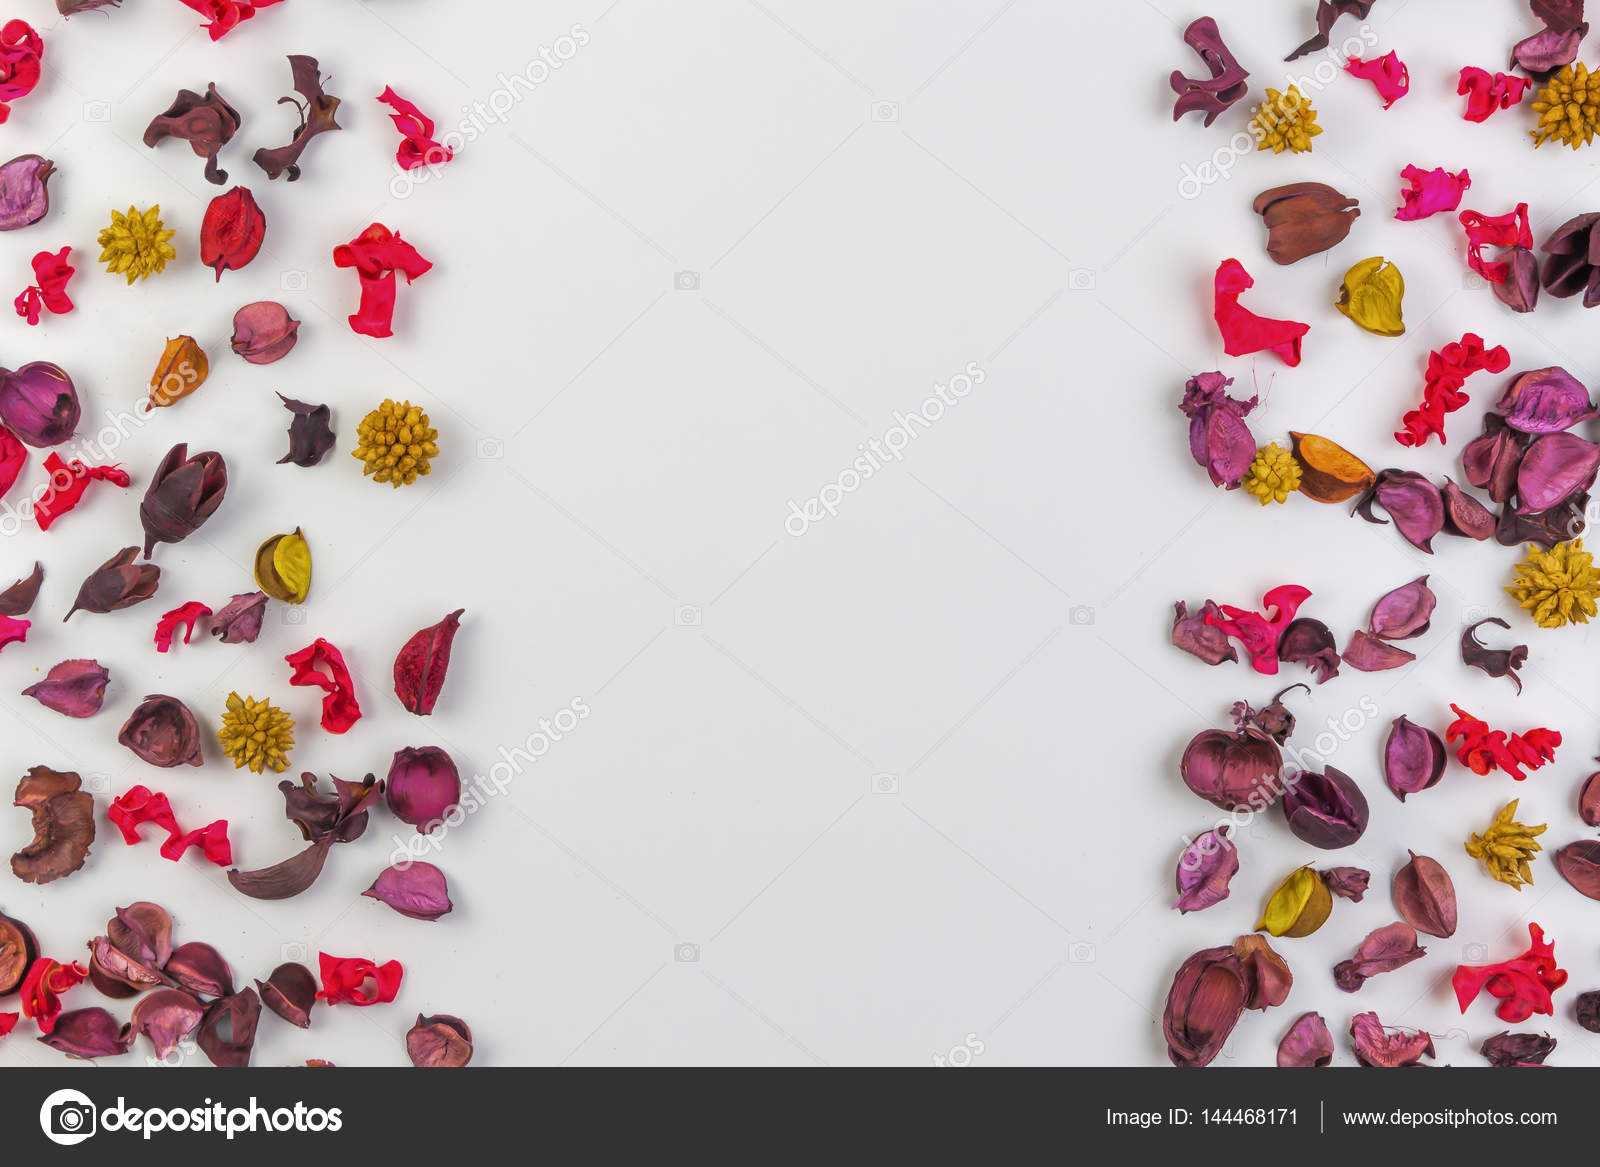 Dried Flowers Petals And Plants Border Frame On White Background